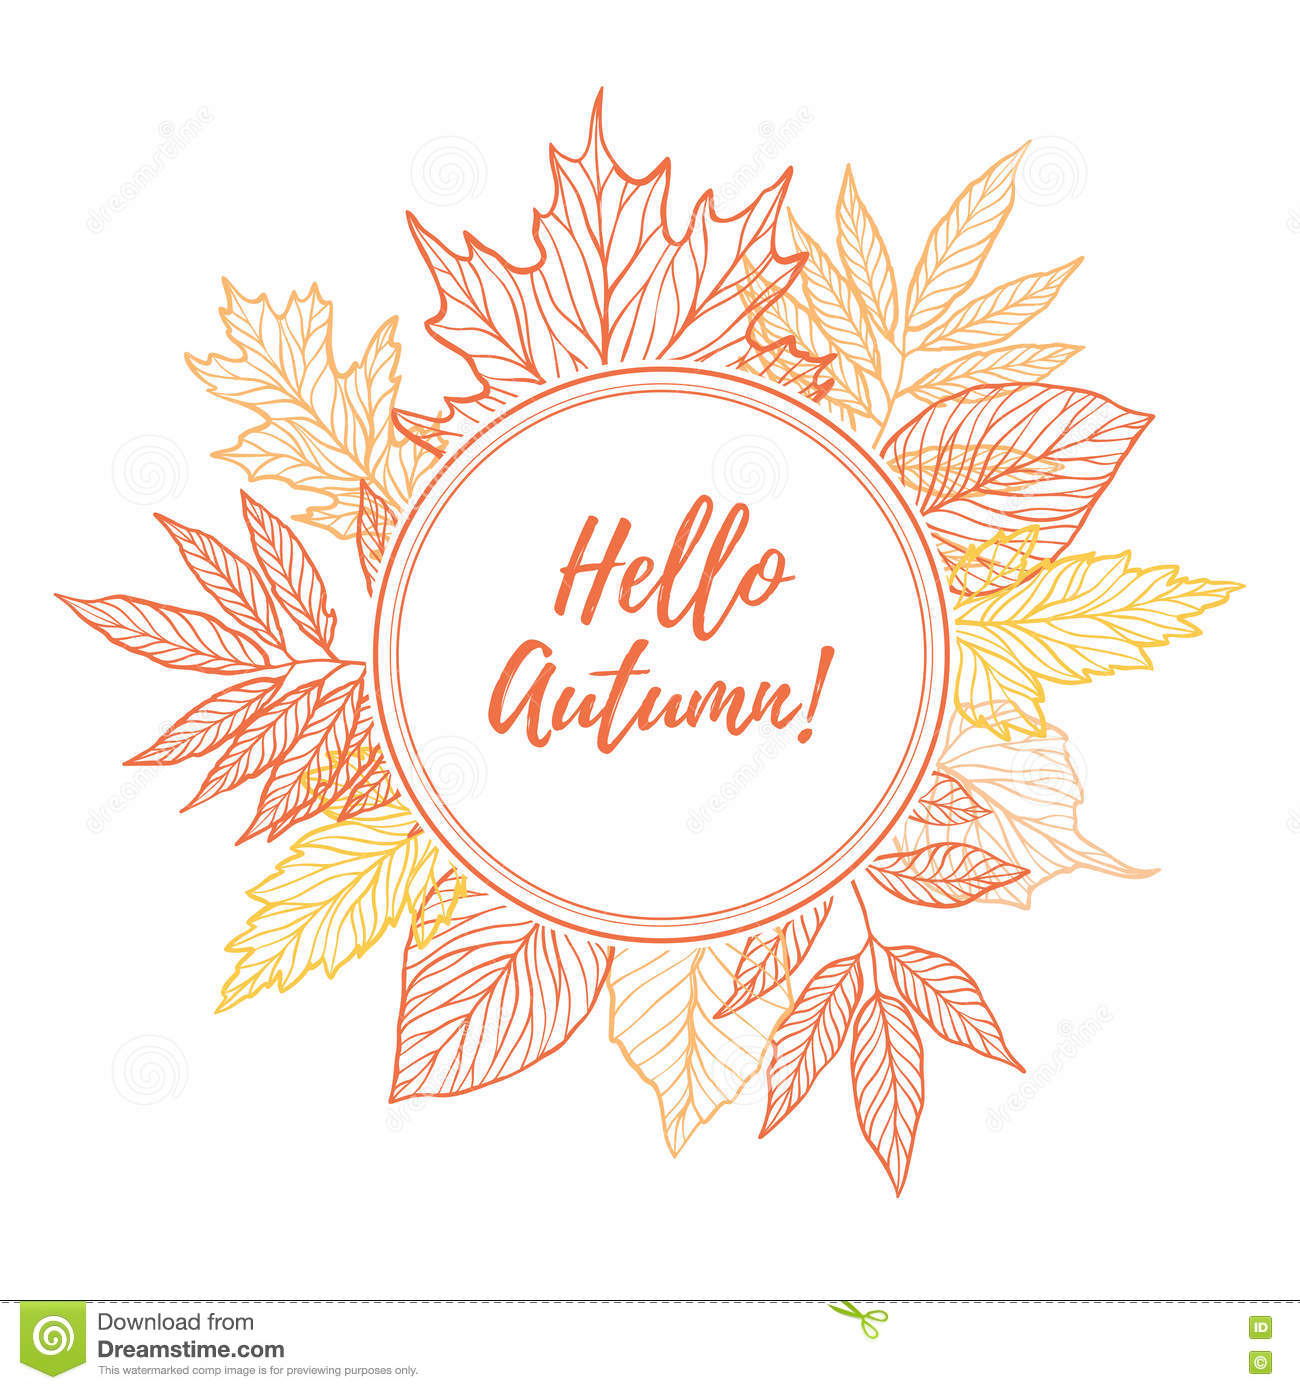 Falling Leaves Wallpaper Free Download Hand Drawn Vector Illustration Round Emblem With Fall